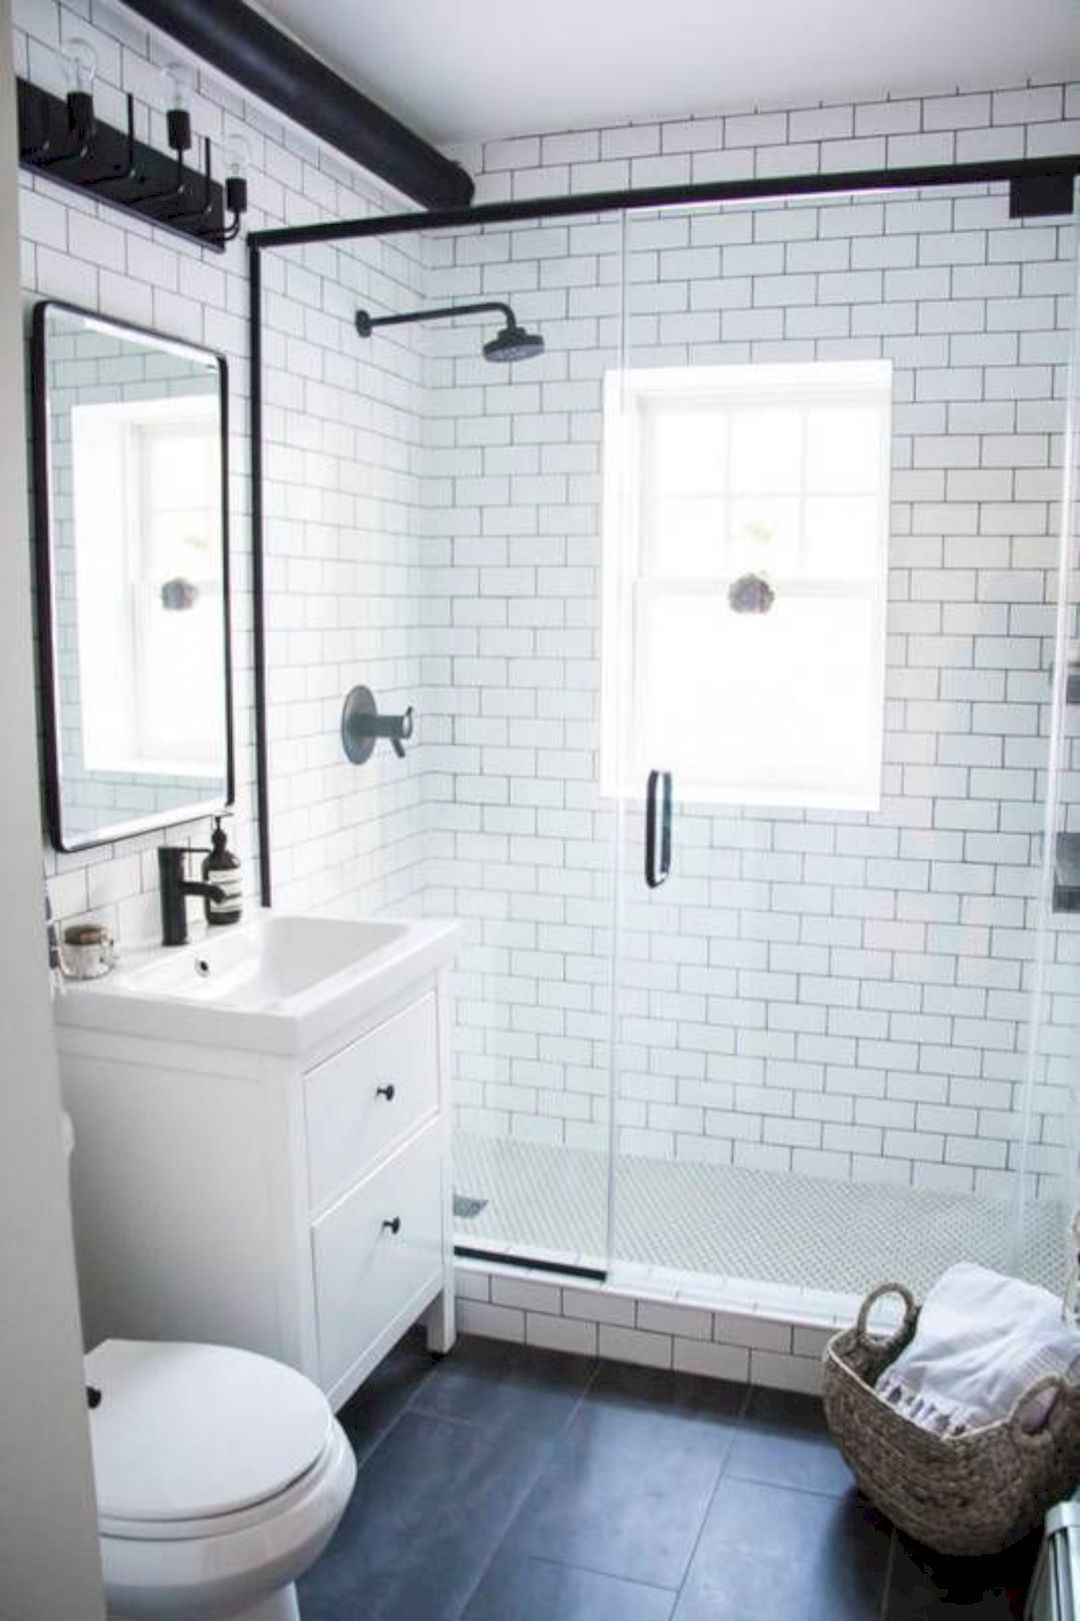 Small Bathroom Renovation Ideas 3 | Remodel flip house | Pinterest ...